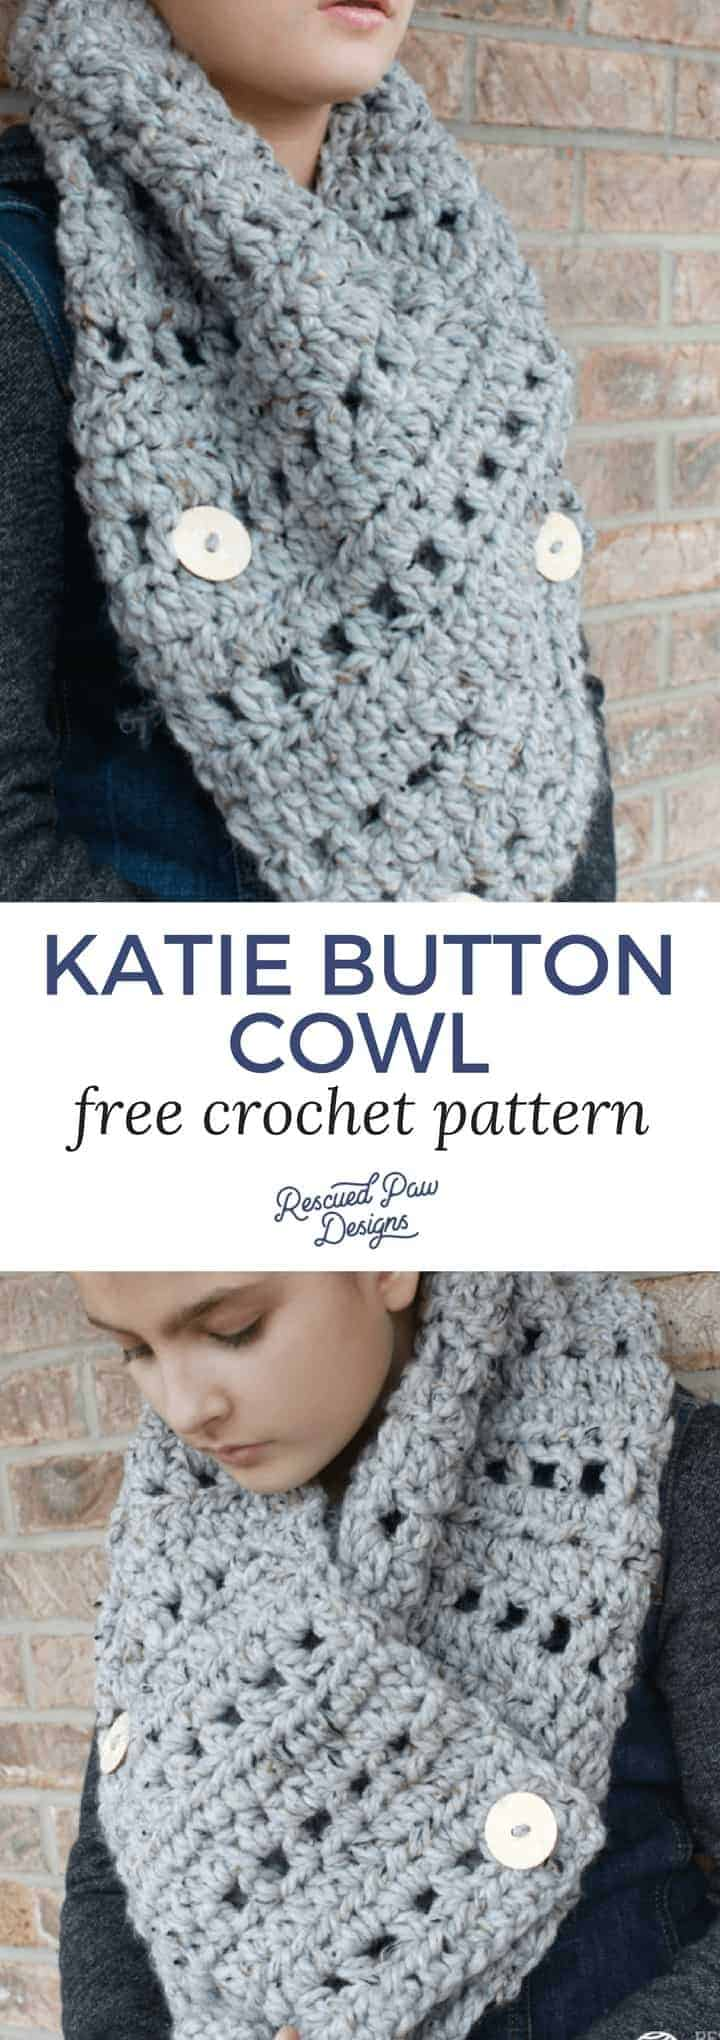 Katie Button Cowl - Free Crochet Pattern by Rescued Paw Designs - Stay Warm!